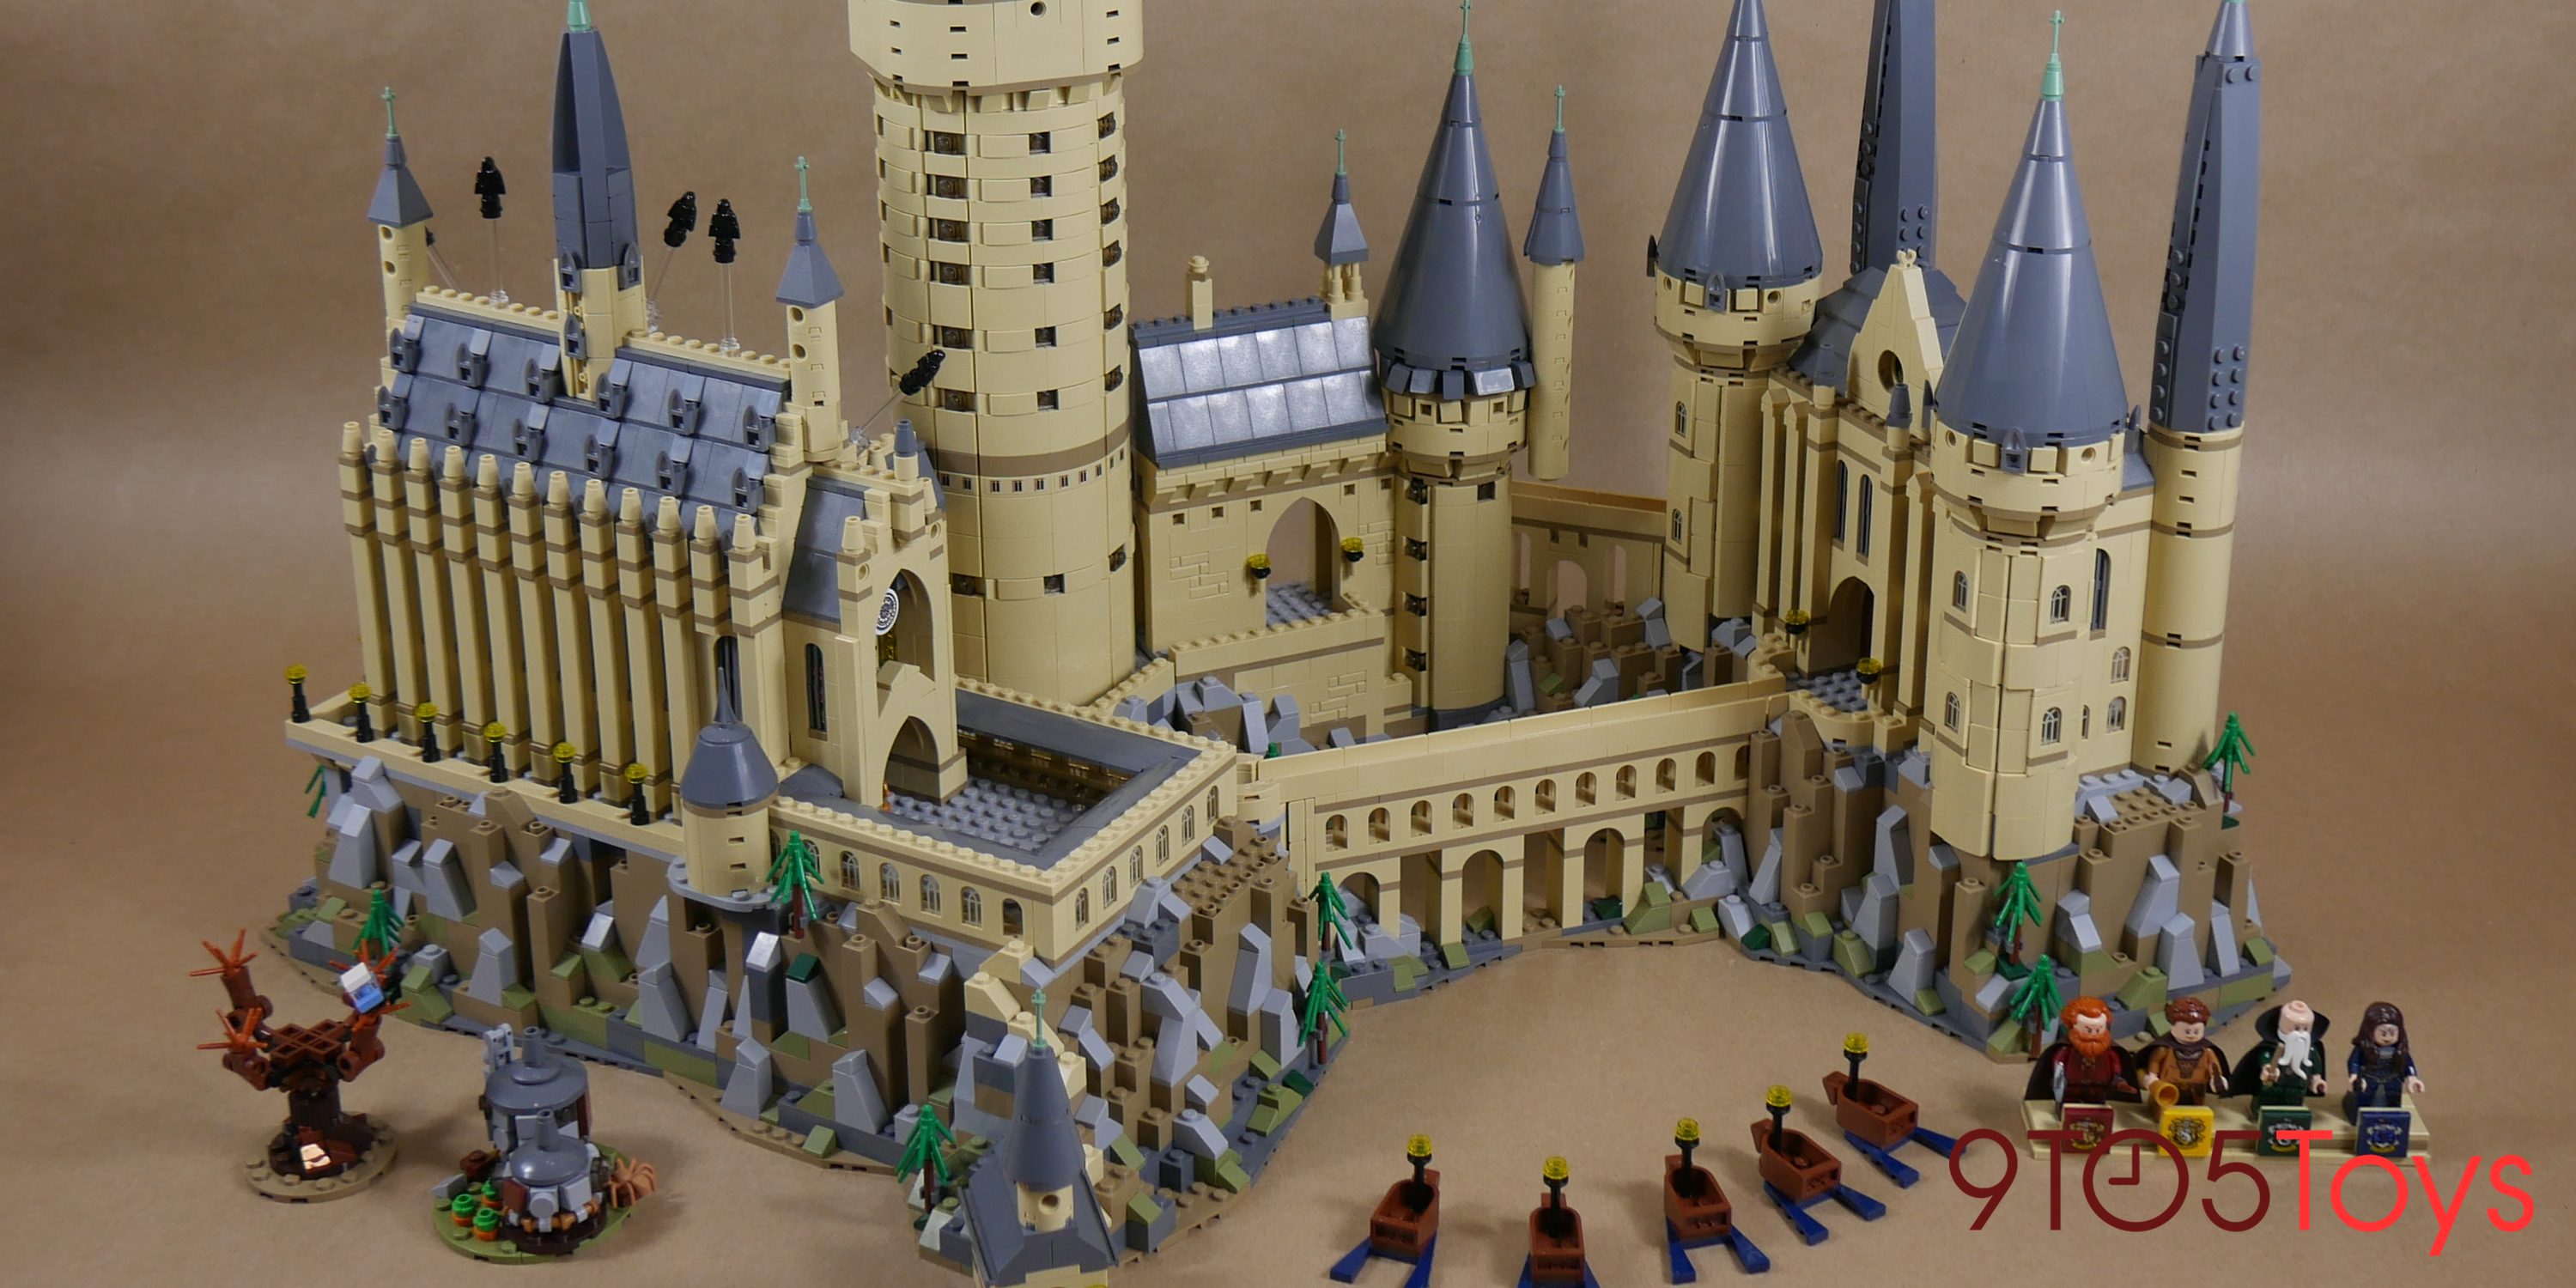 LEGO Hogwarts Castle Review: The 2nd largest kit in history reigns supreme over all